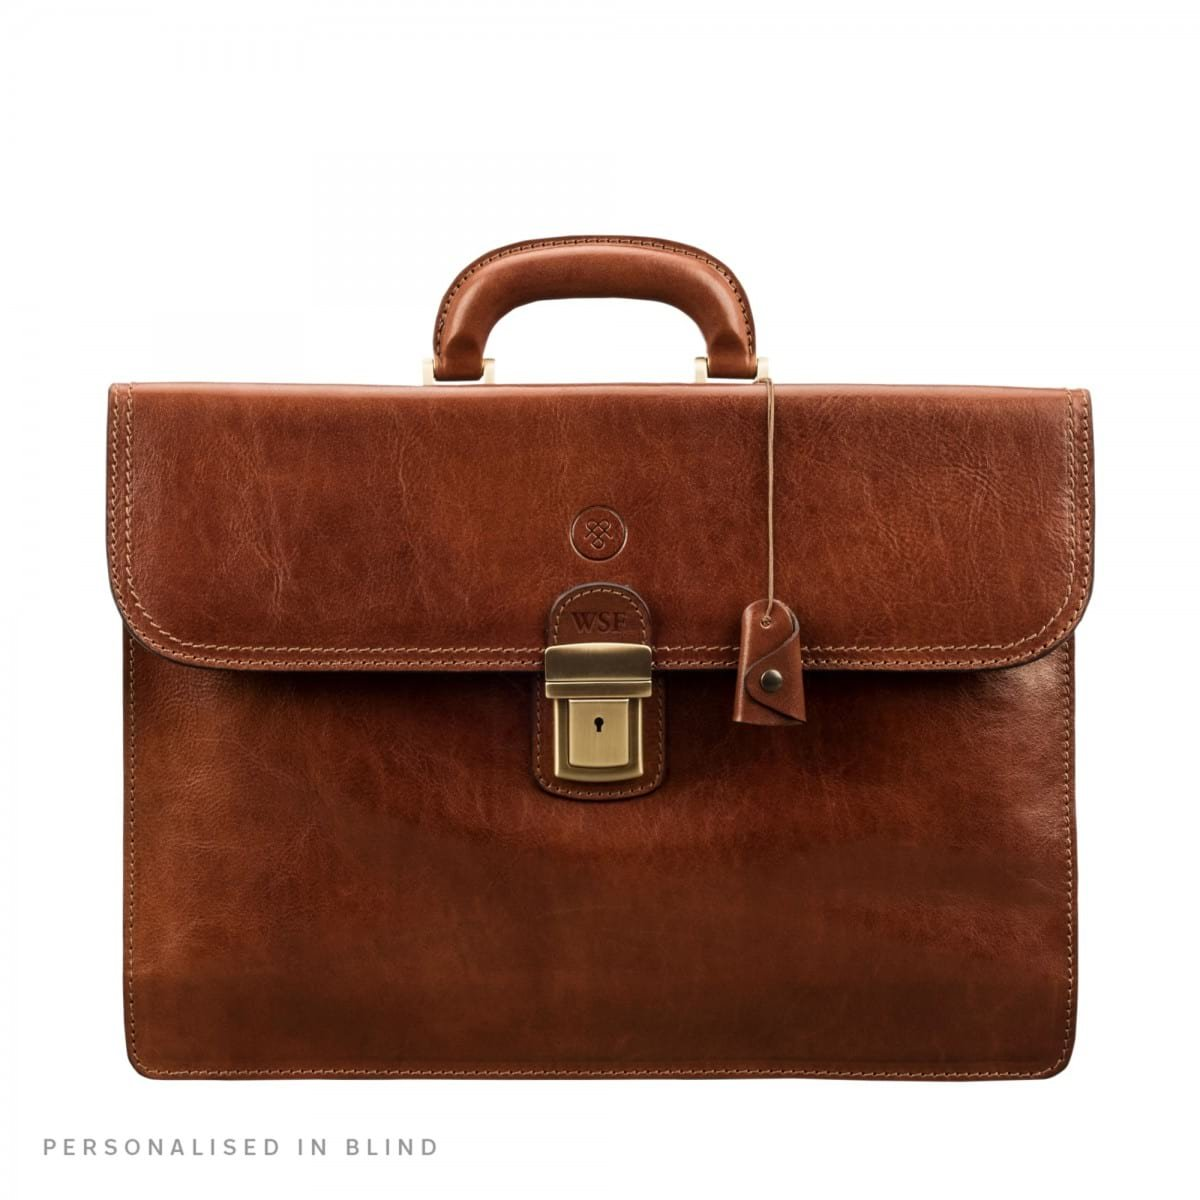 Maxwell Scott Luxury Leather Tan Traditional Briefcase (The Paolo2) - One Size